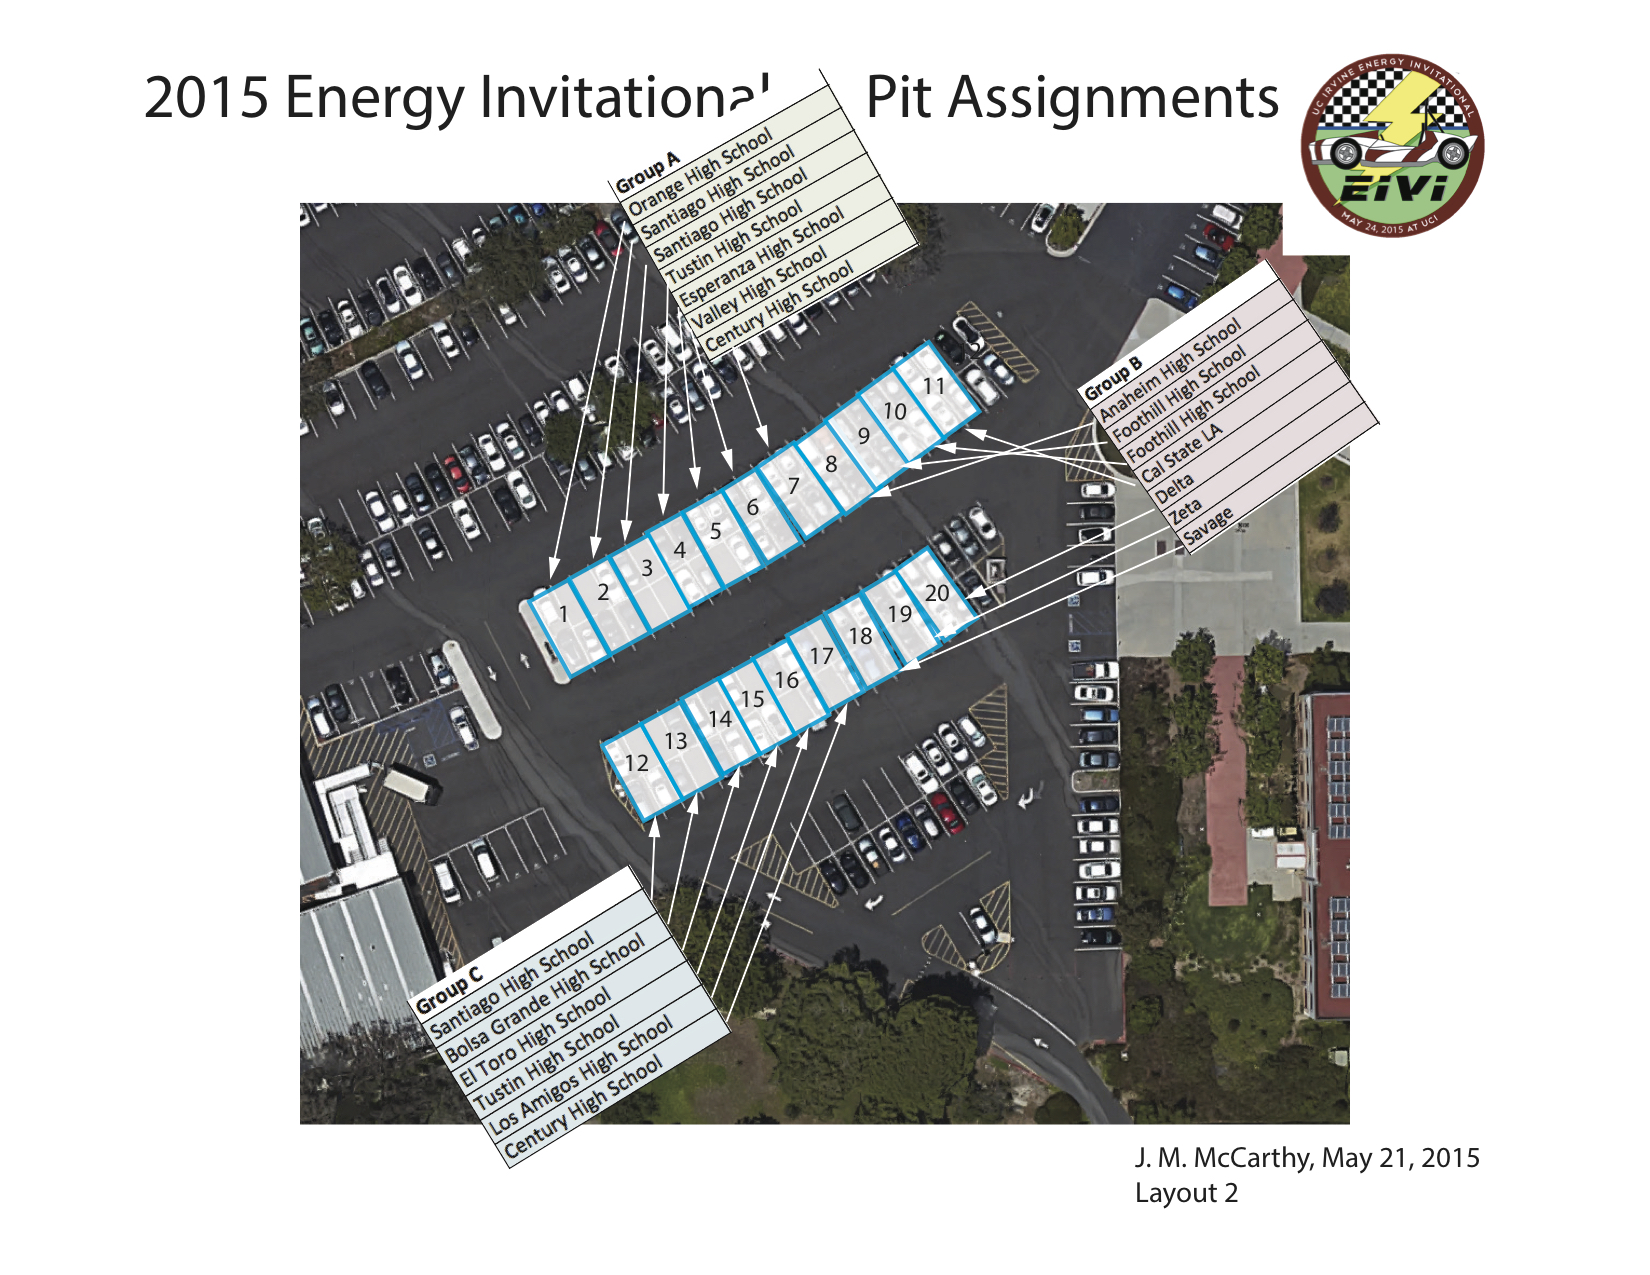 2015 Energy Invitational Layout 2 pits